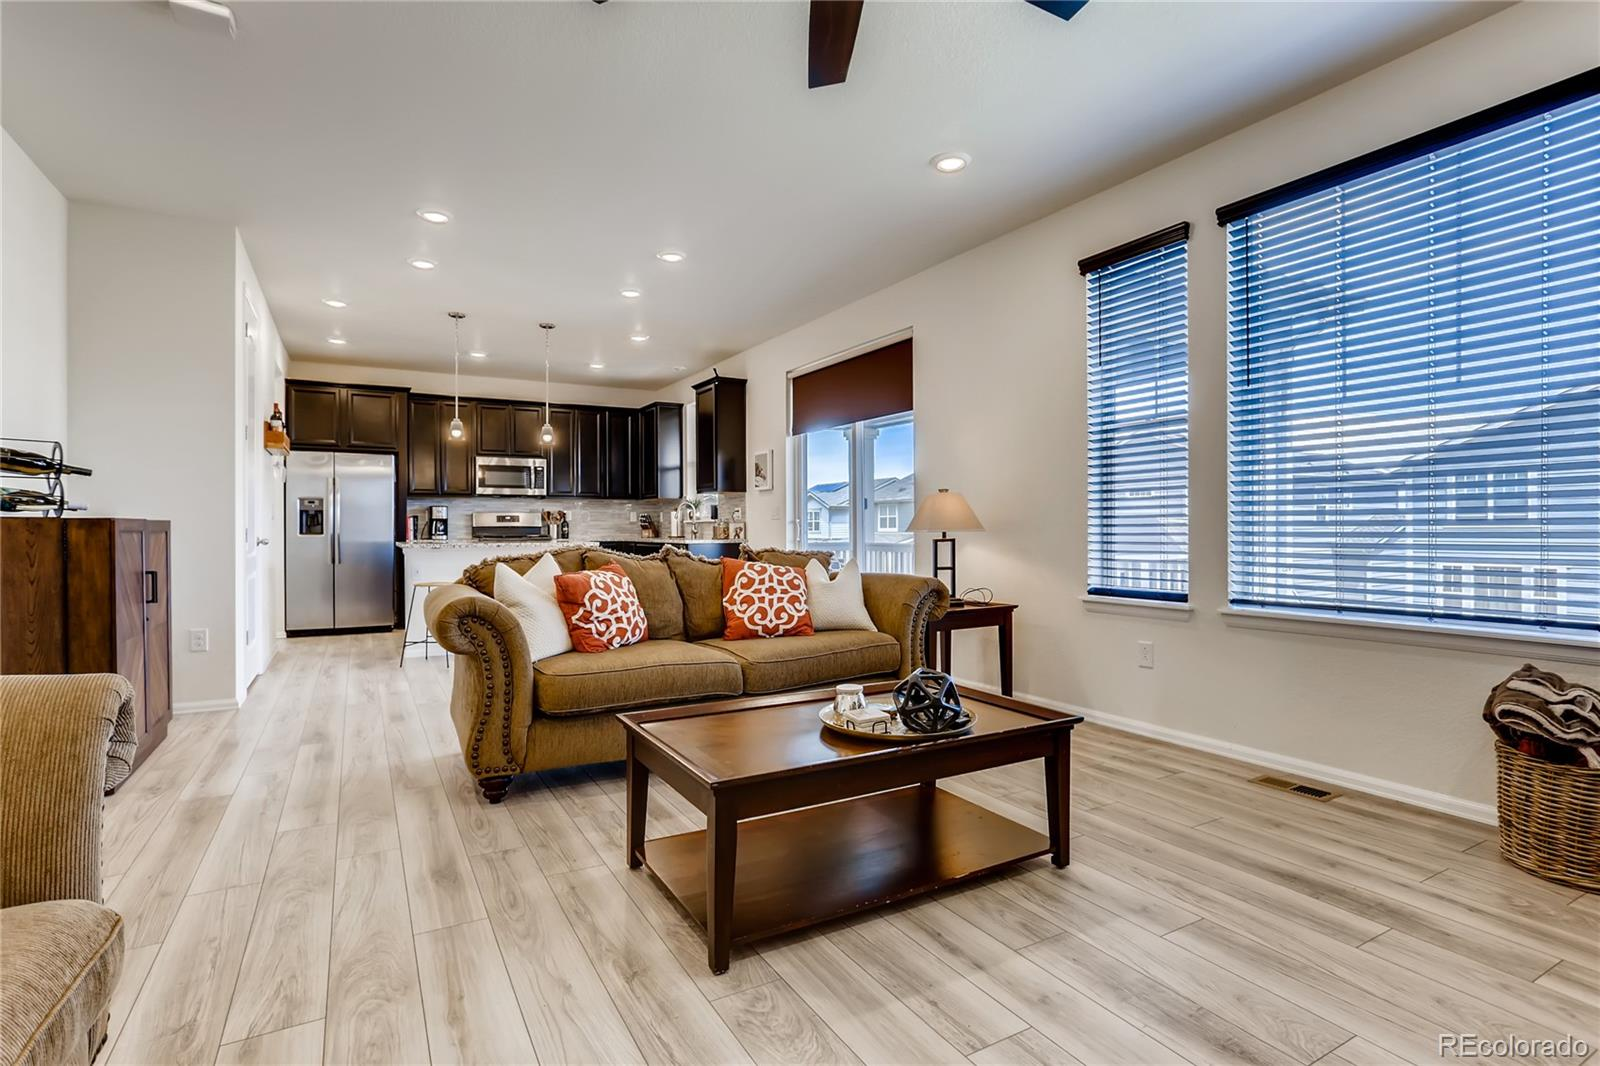 MLS# 2145354 - 7 - 26325 E Canal Place, Aurora, CO 80018